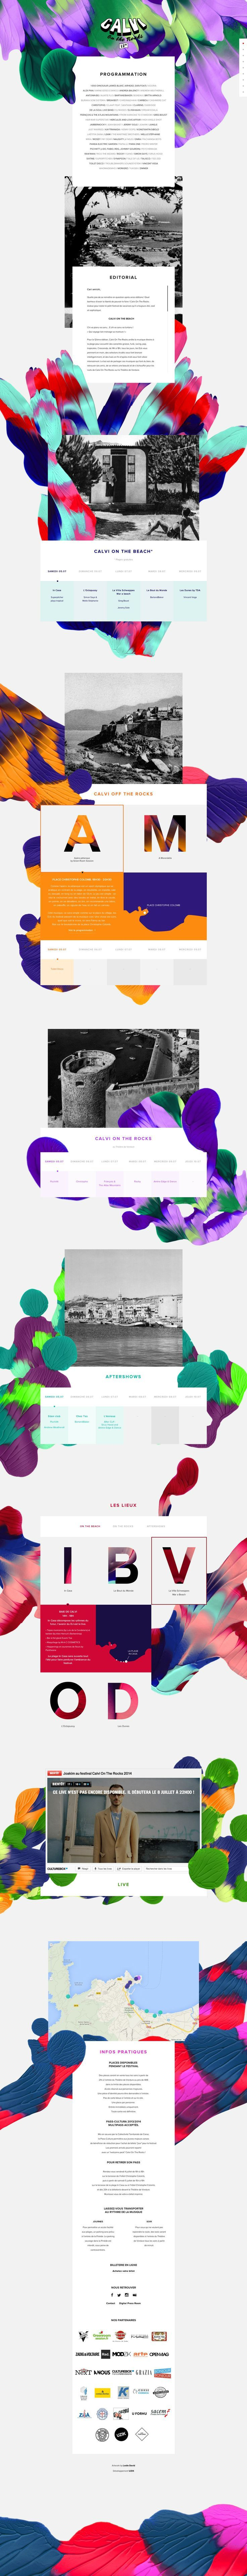 Pin de Charlx | Digital Art Director en WEB DESIGN | Pinterest